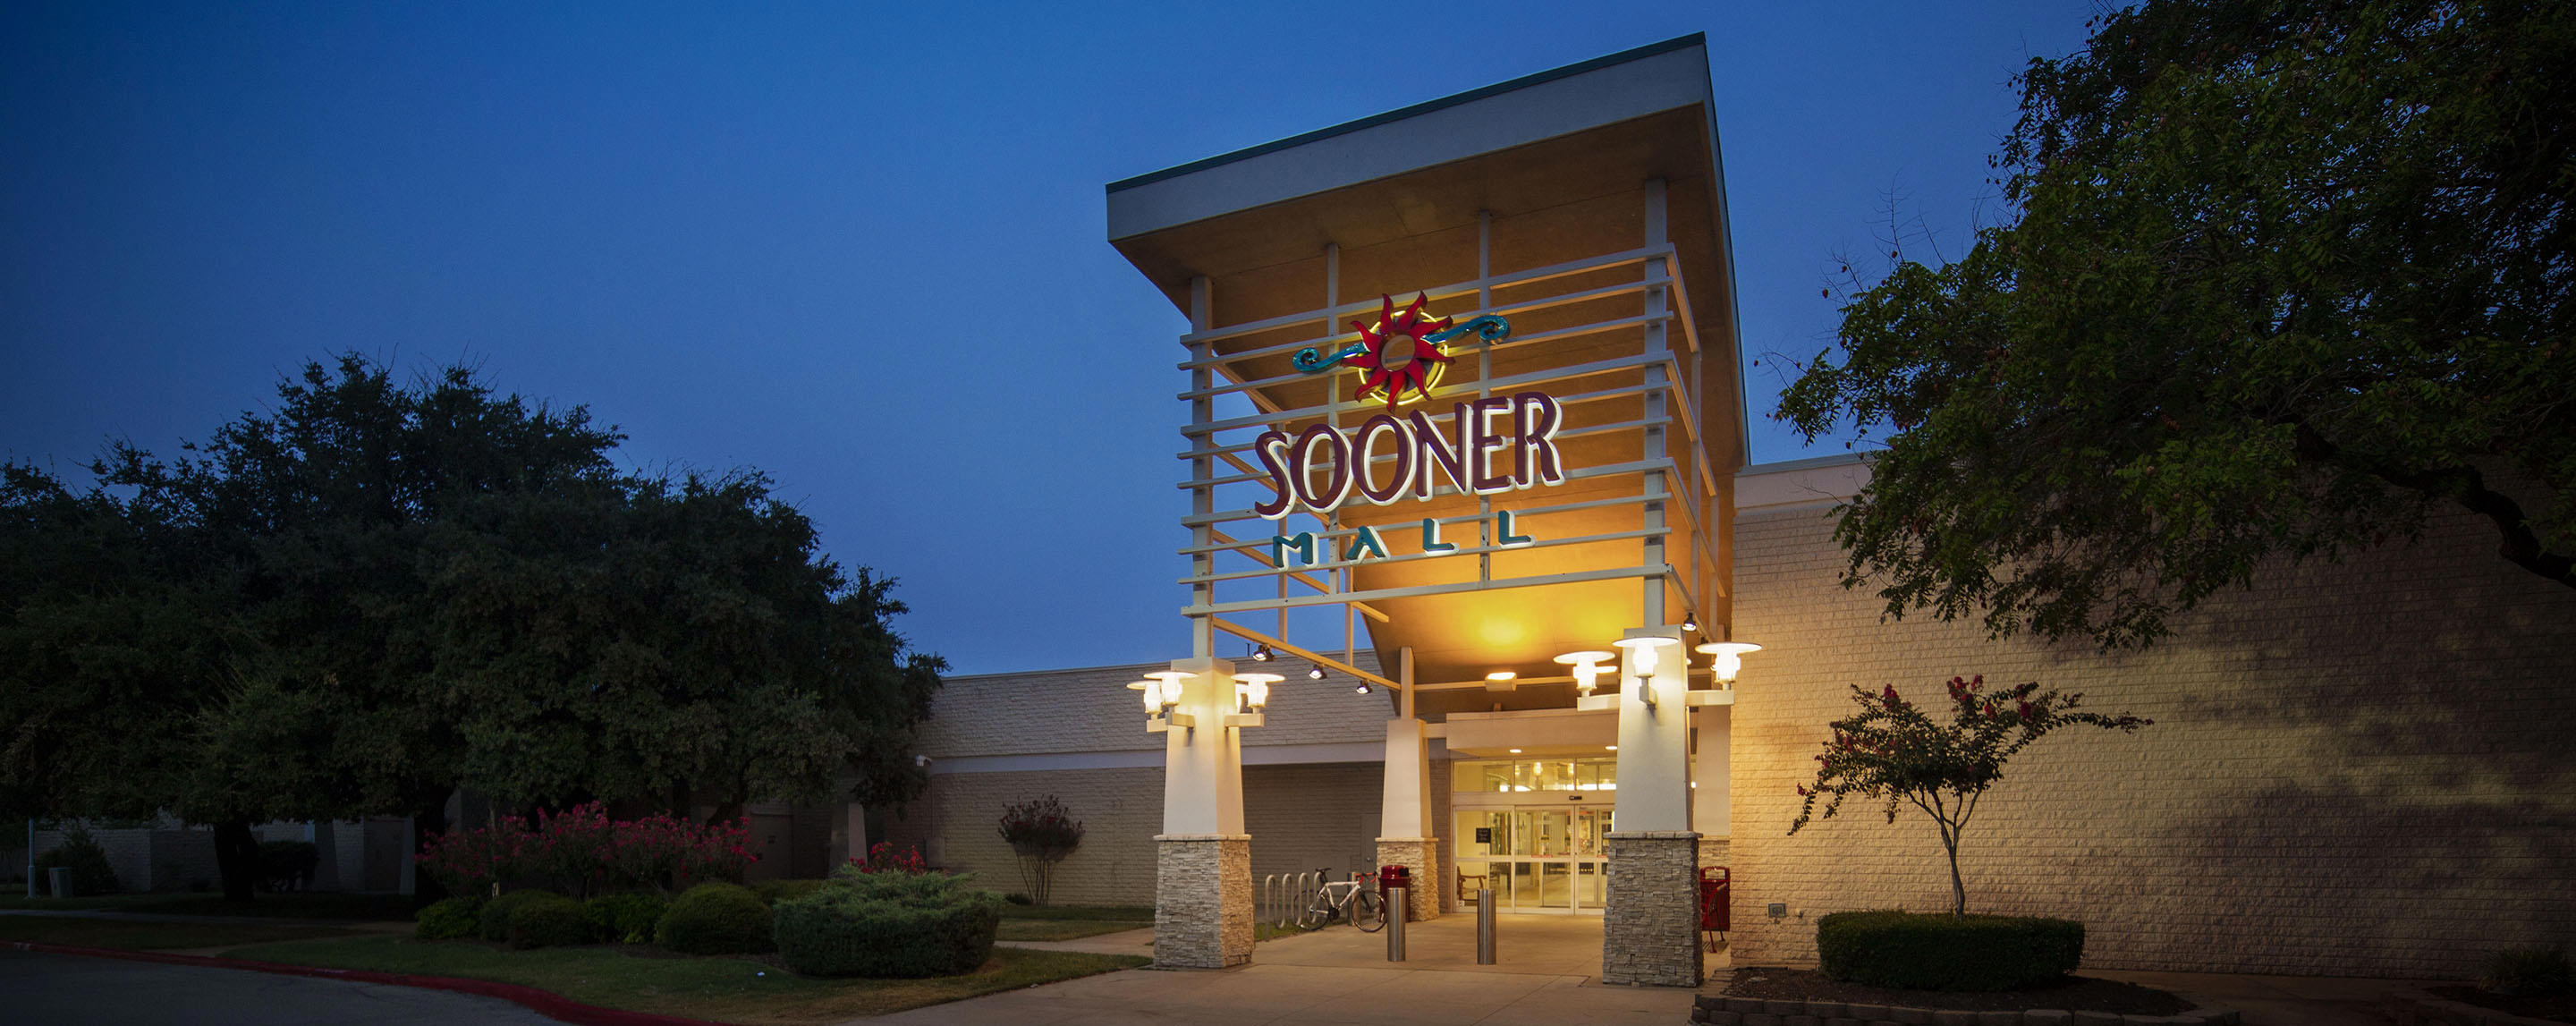 A sign on the outdoor entrance to Sooner Mall is lit up and surrounded by trees.